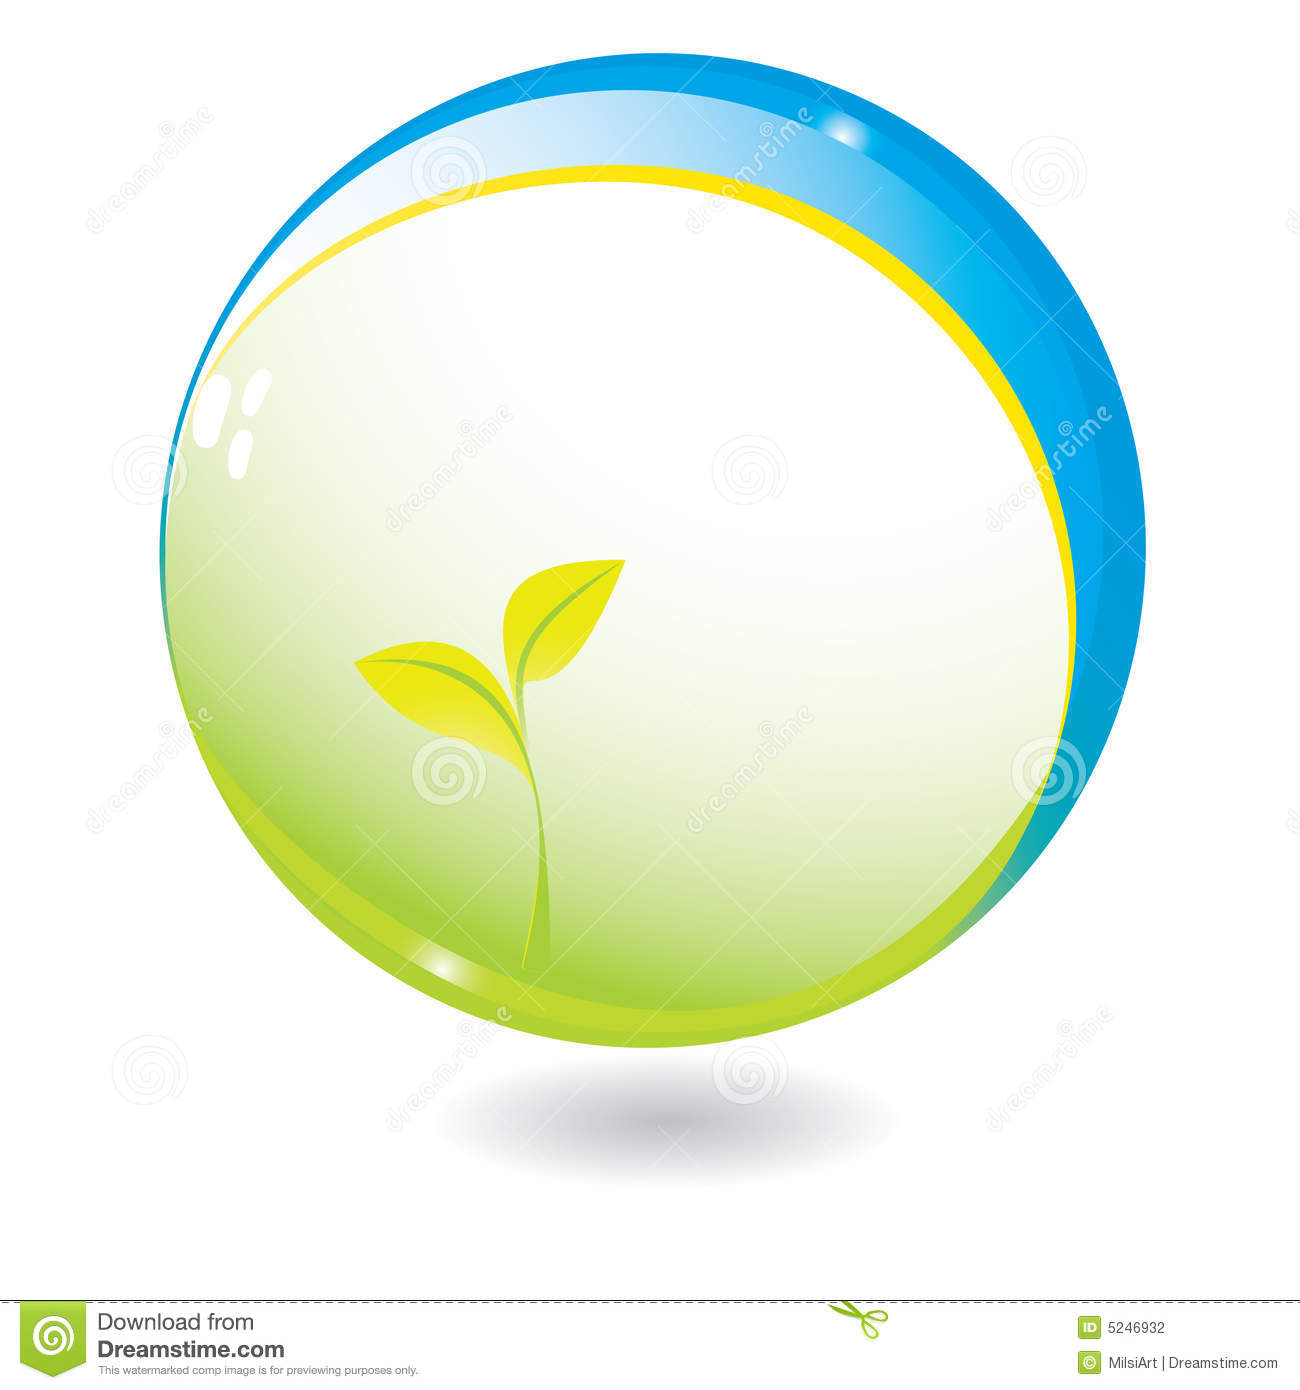 New Life In Sphere Stock Photography.